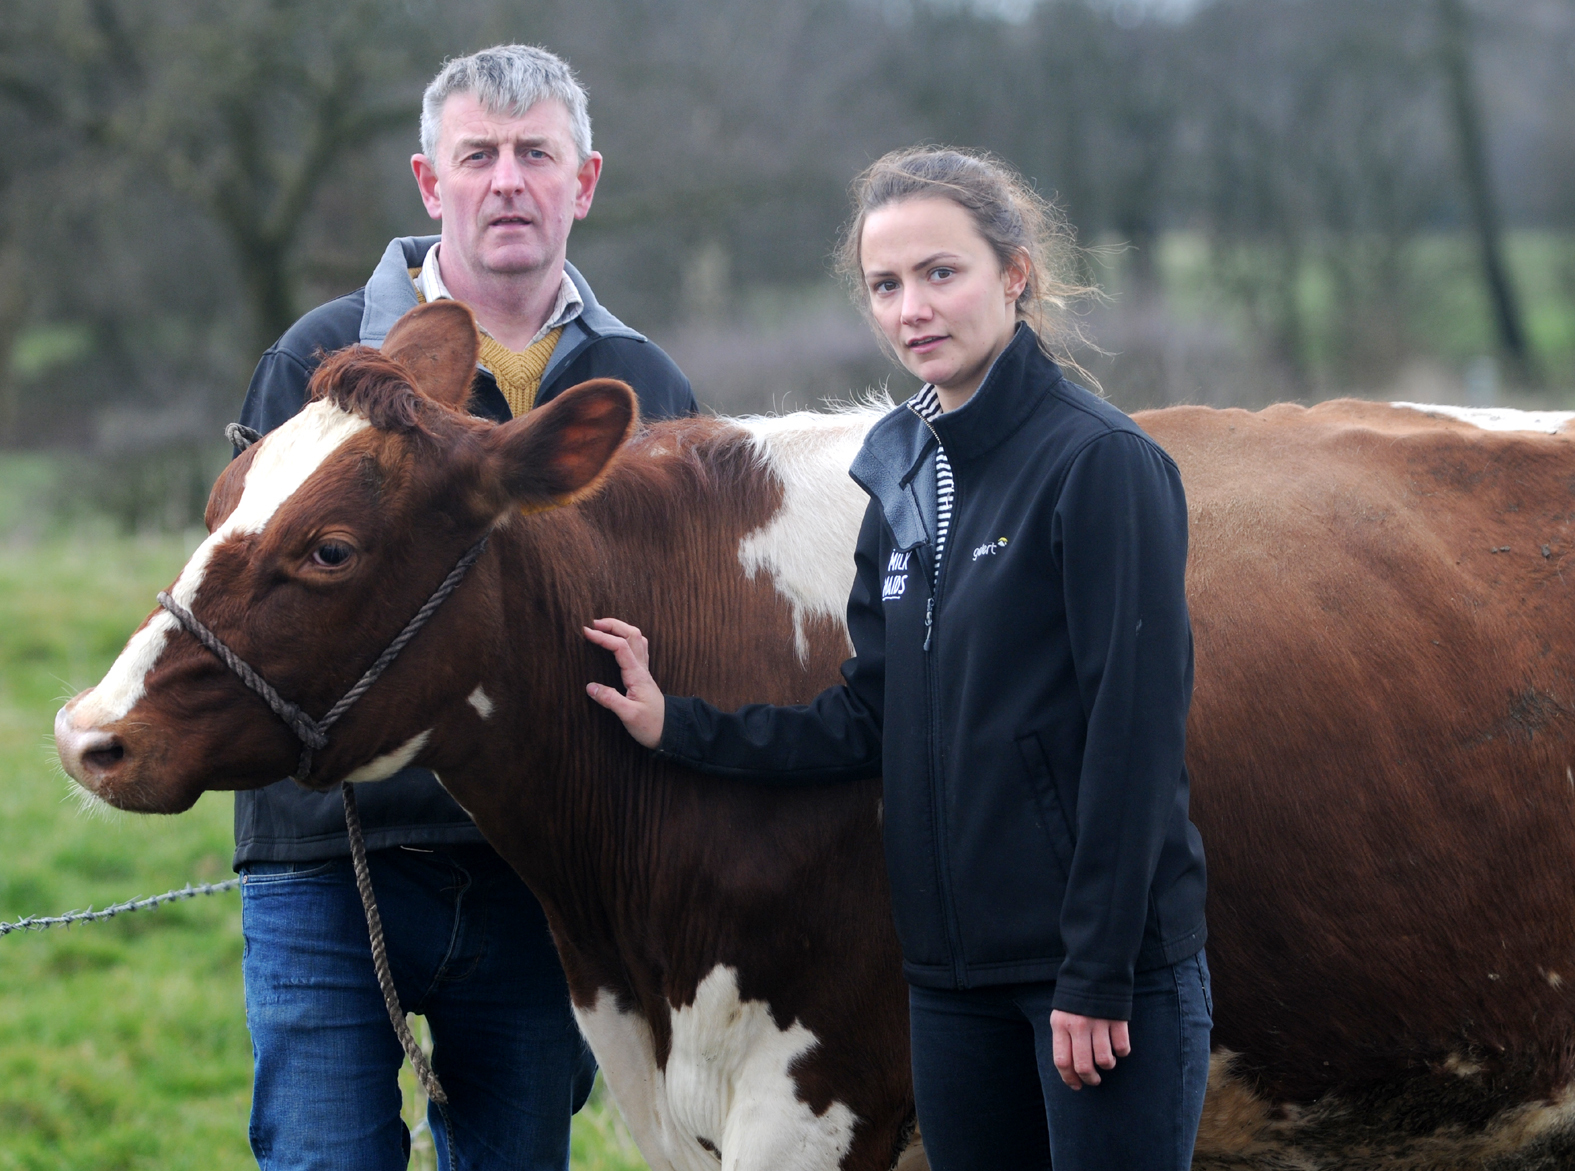 Michael Partington with his daughter Fiona at Dearden's Farm, Over Hulton which will have to close if the Hulton Park development goes ahead